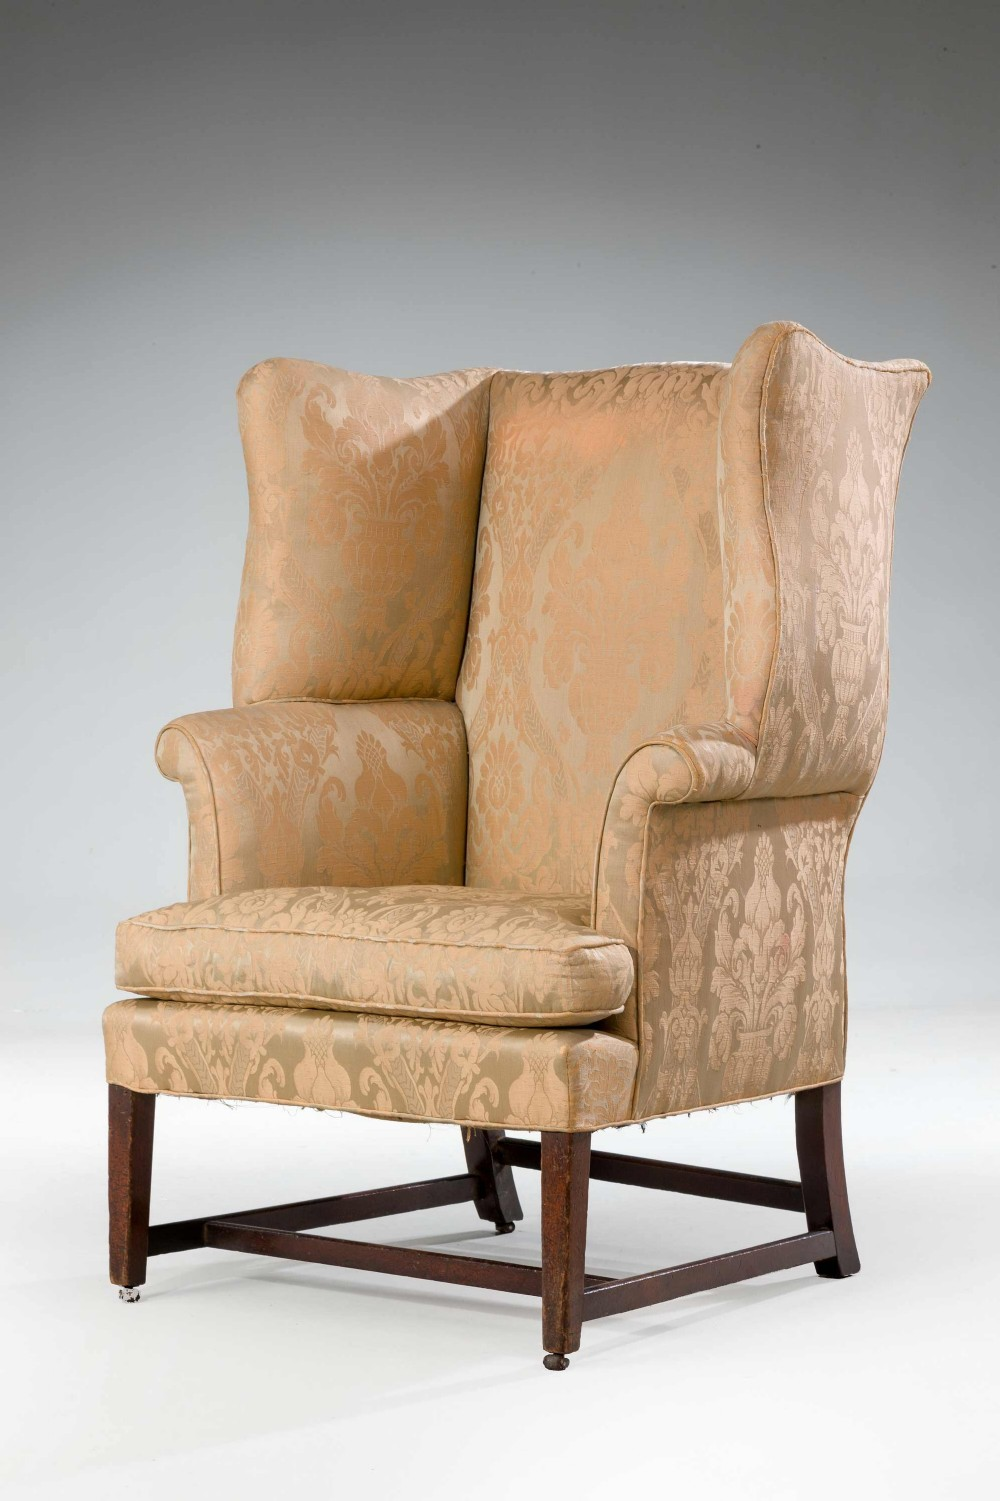 george iii period wing chair with serpentine wings